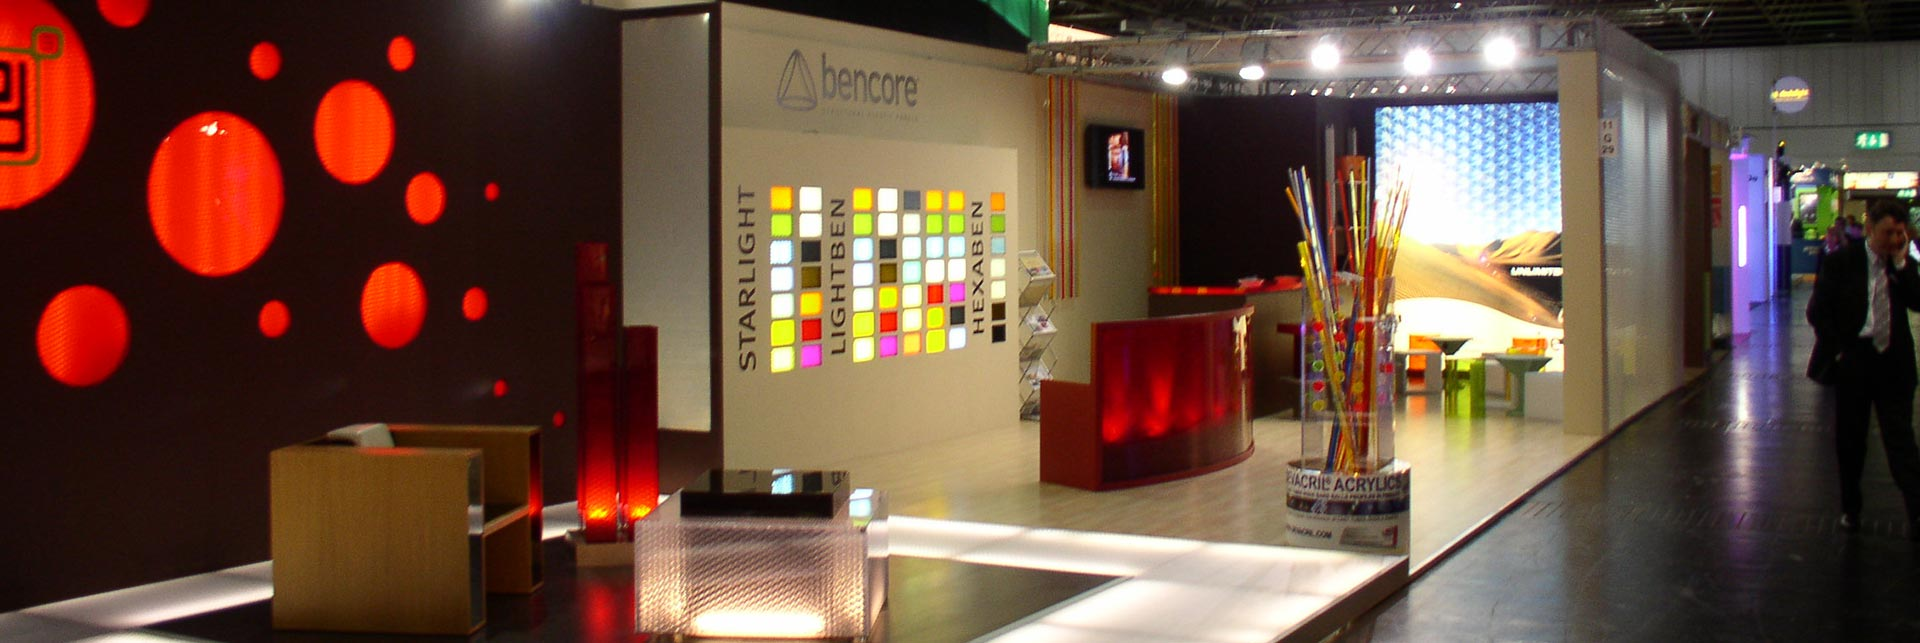 Euroshop 2008, Bencore stand